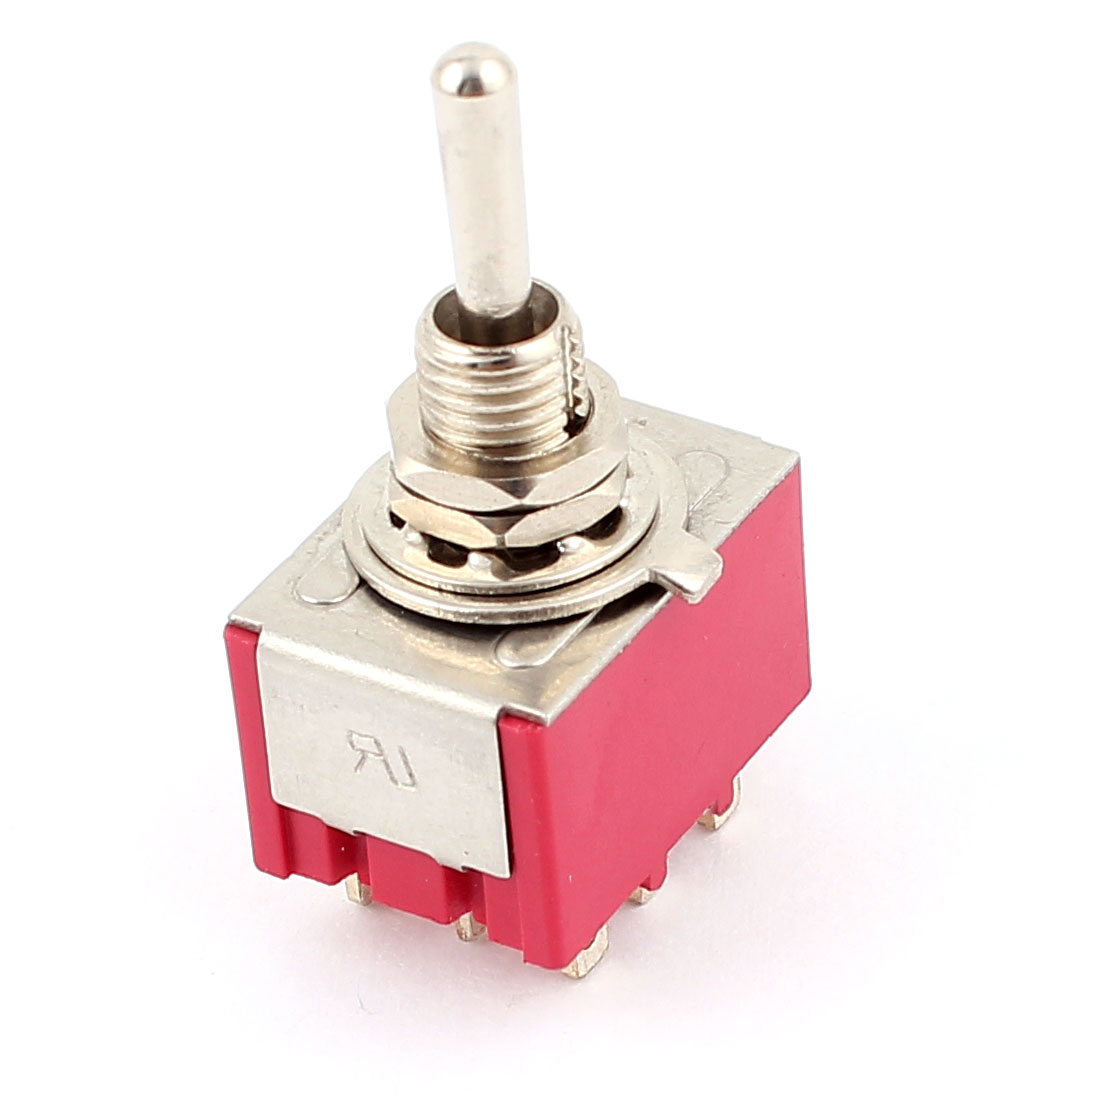 AC 250V/2A 125V/5A 9Pin 6mm Mounting Thread 3PDT ON-OFF-ON Locking Toggle Switch